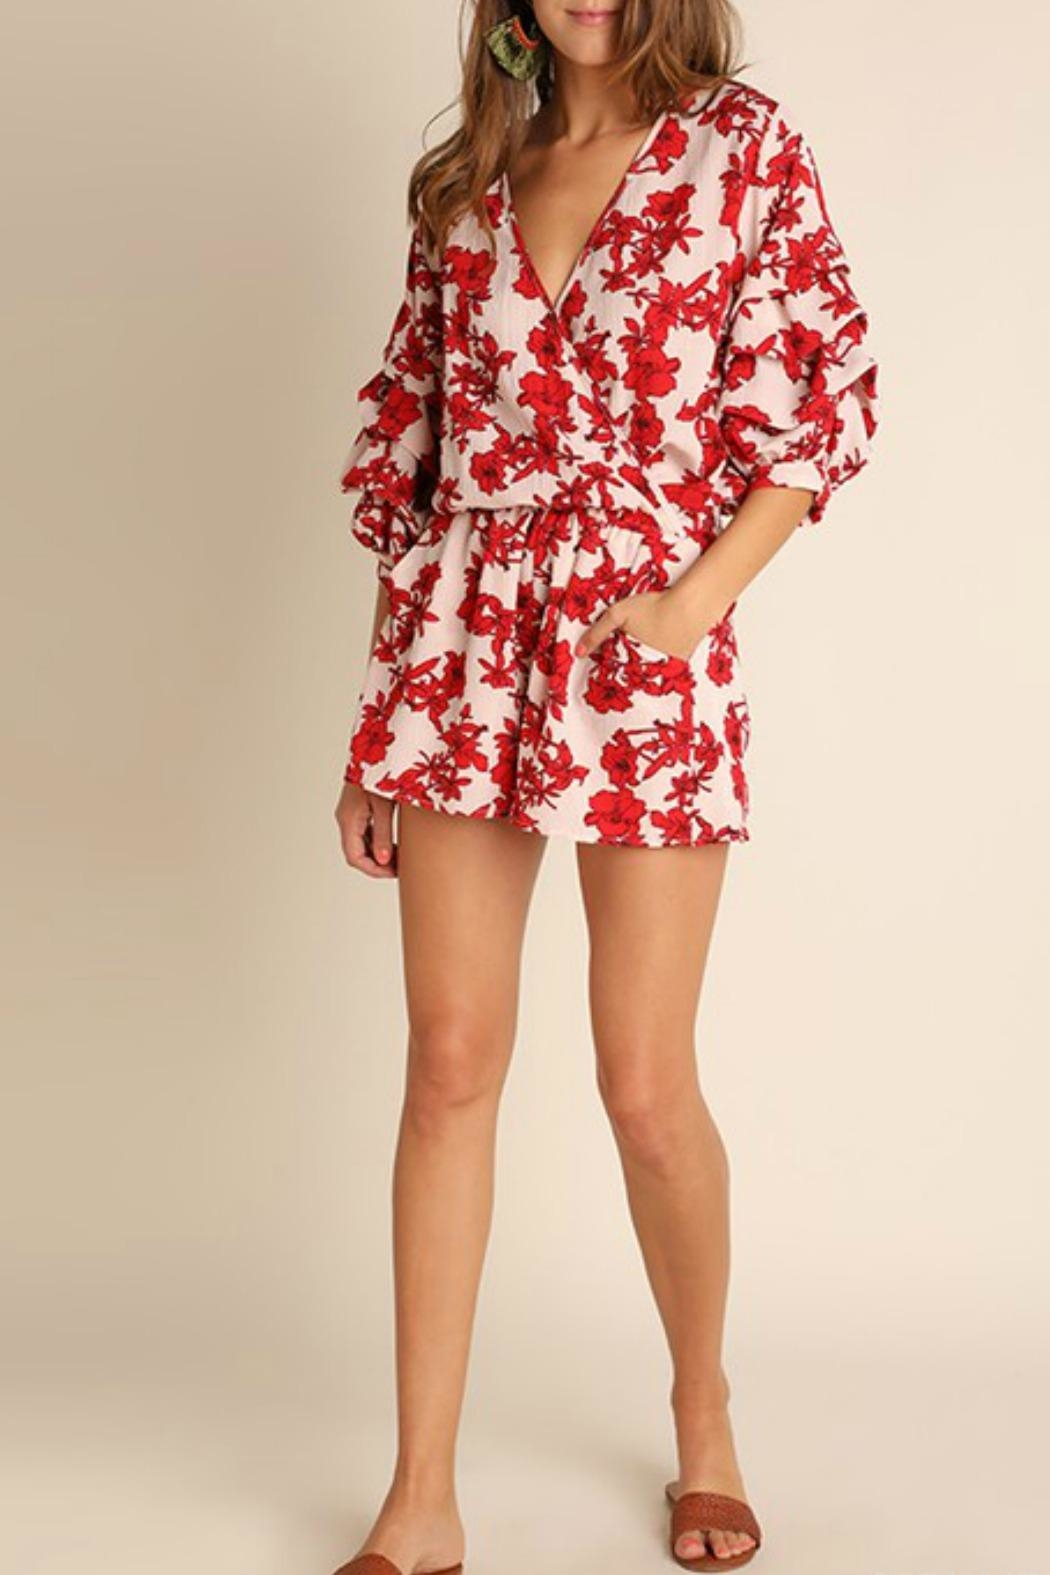 Umgee USA Red Floral Romper - Main Image